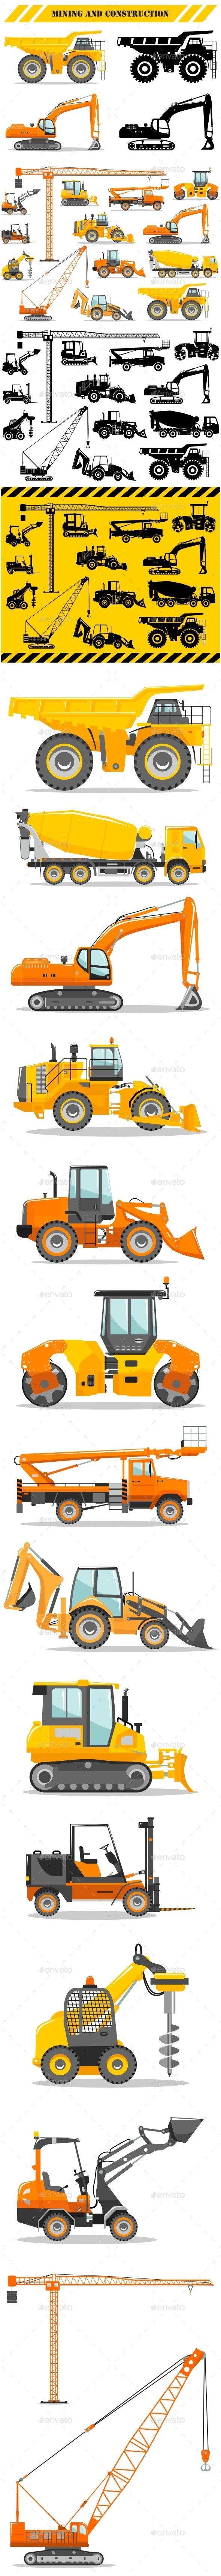 Set of Heavy Construction and Mining Machines Icons - Man-made Objects Objects